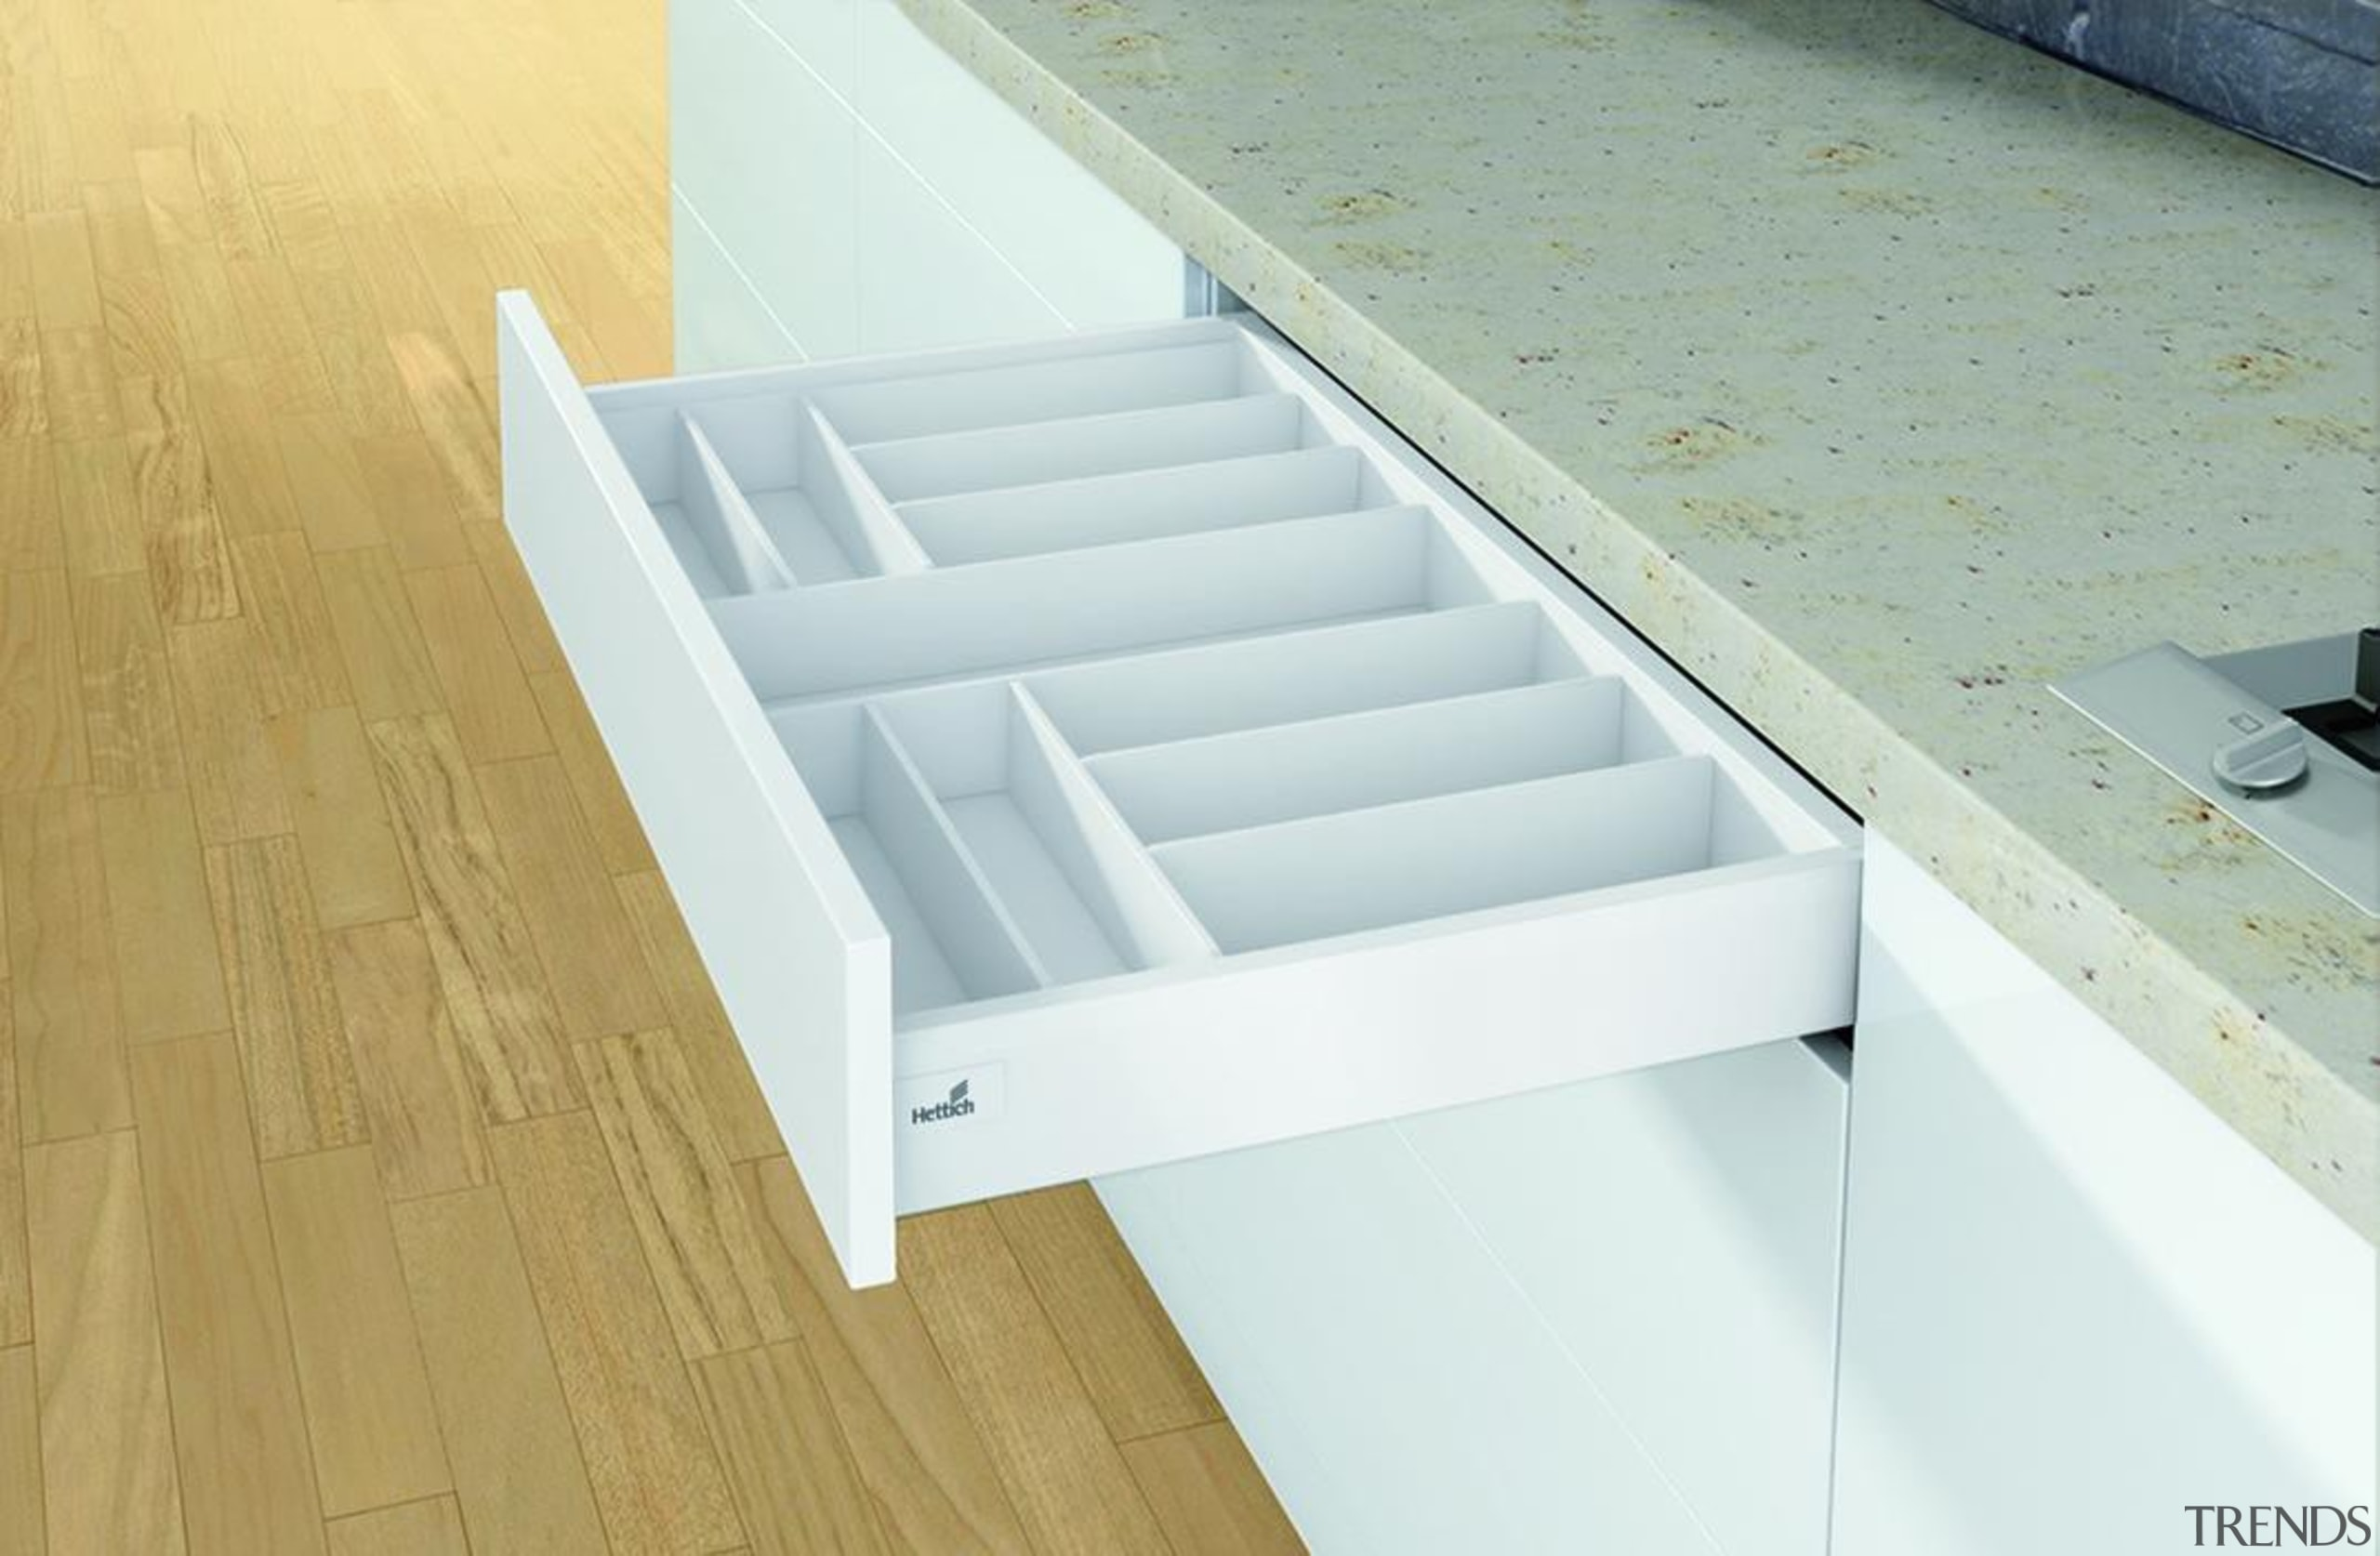 Cutlery Drawer - Cutlery Drawer - angle | angle, daylighting, drawer, floor, furniture, product, product design, table, wood, white, orange